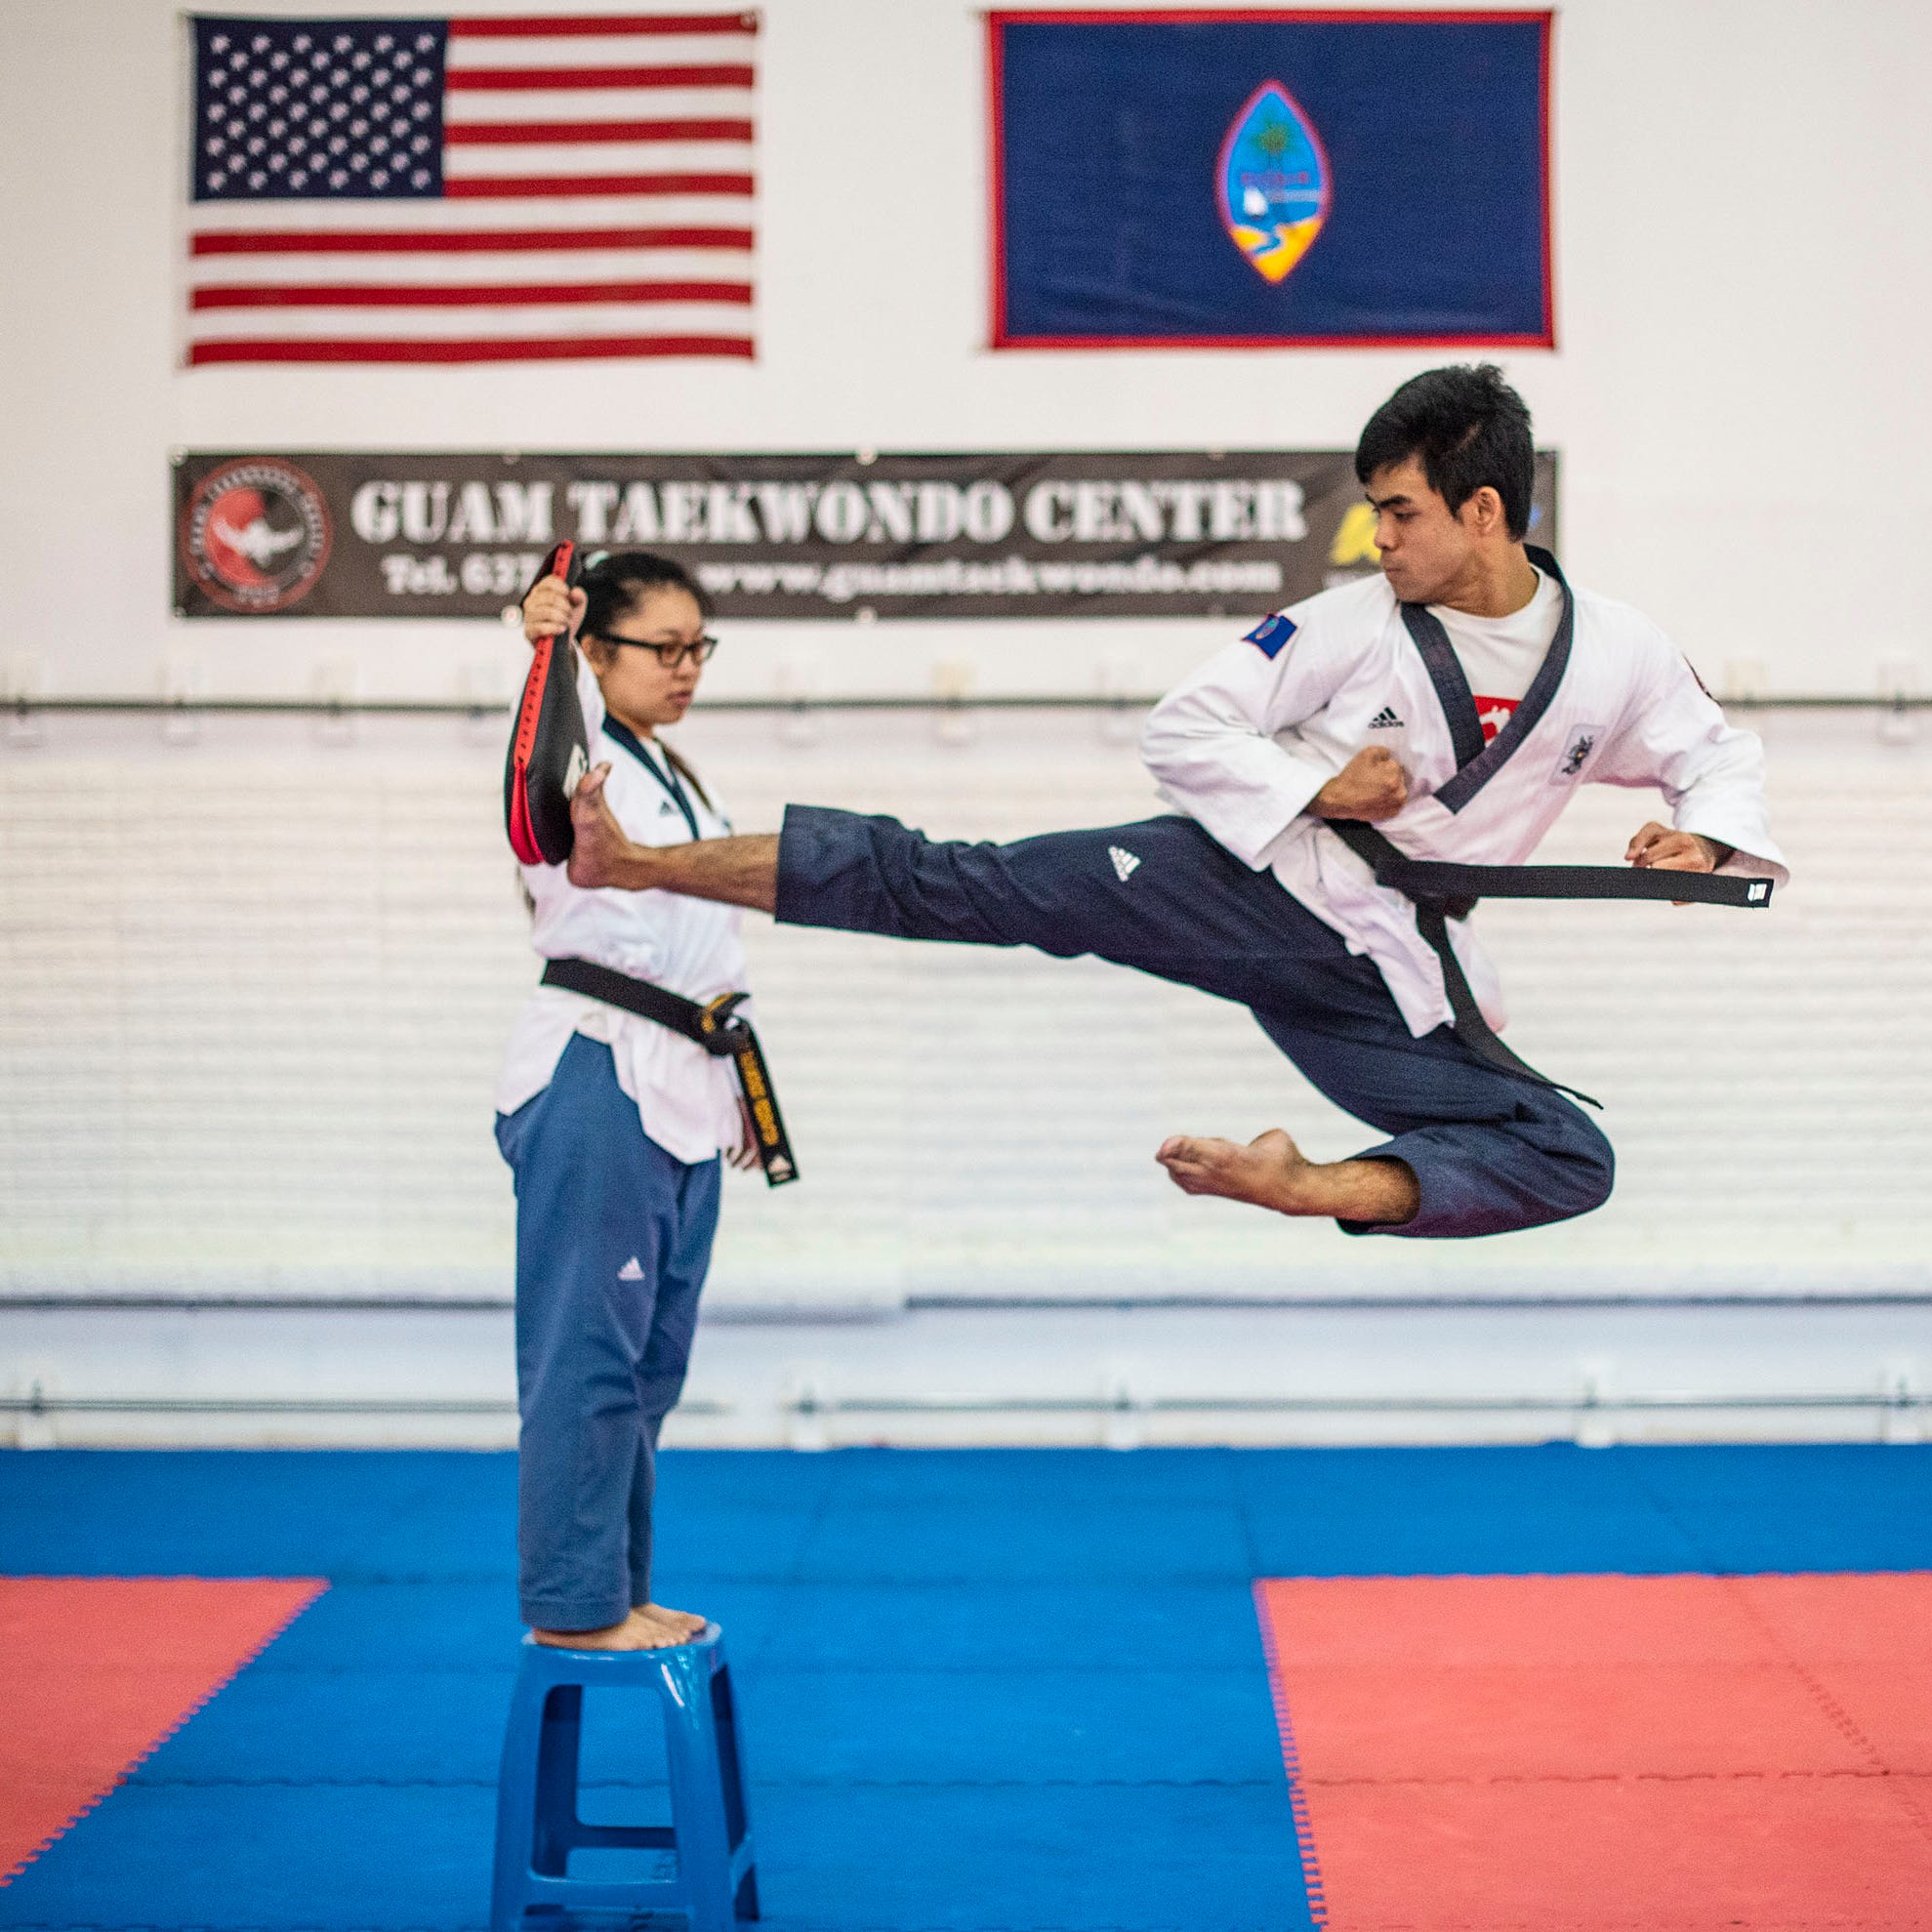 Sports Short: Tryouts begin December 23 for Guam Taekwondo national team